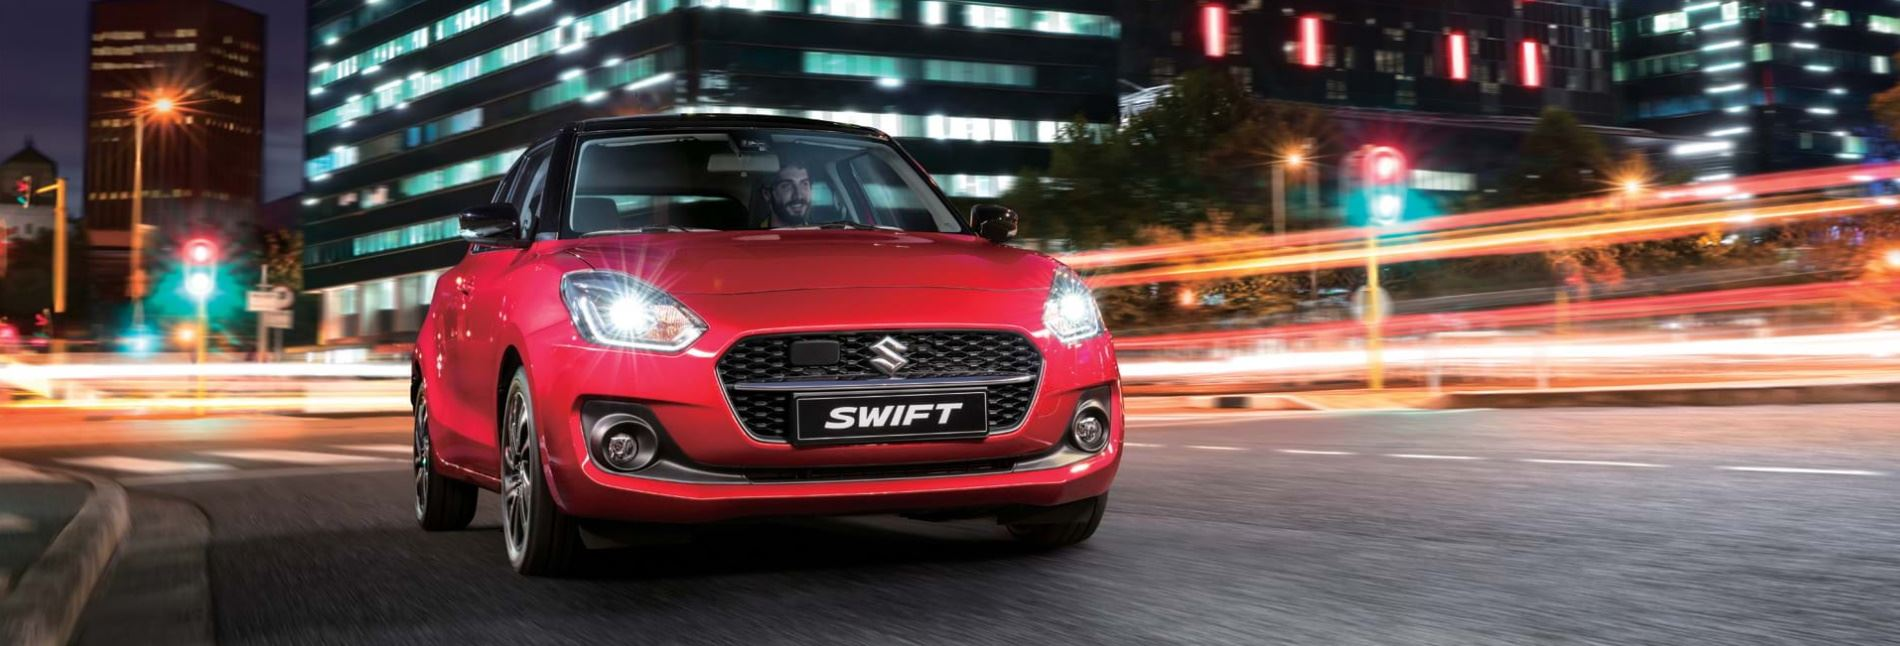 Swift Hybrid Facelift